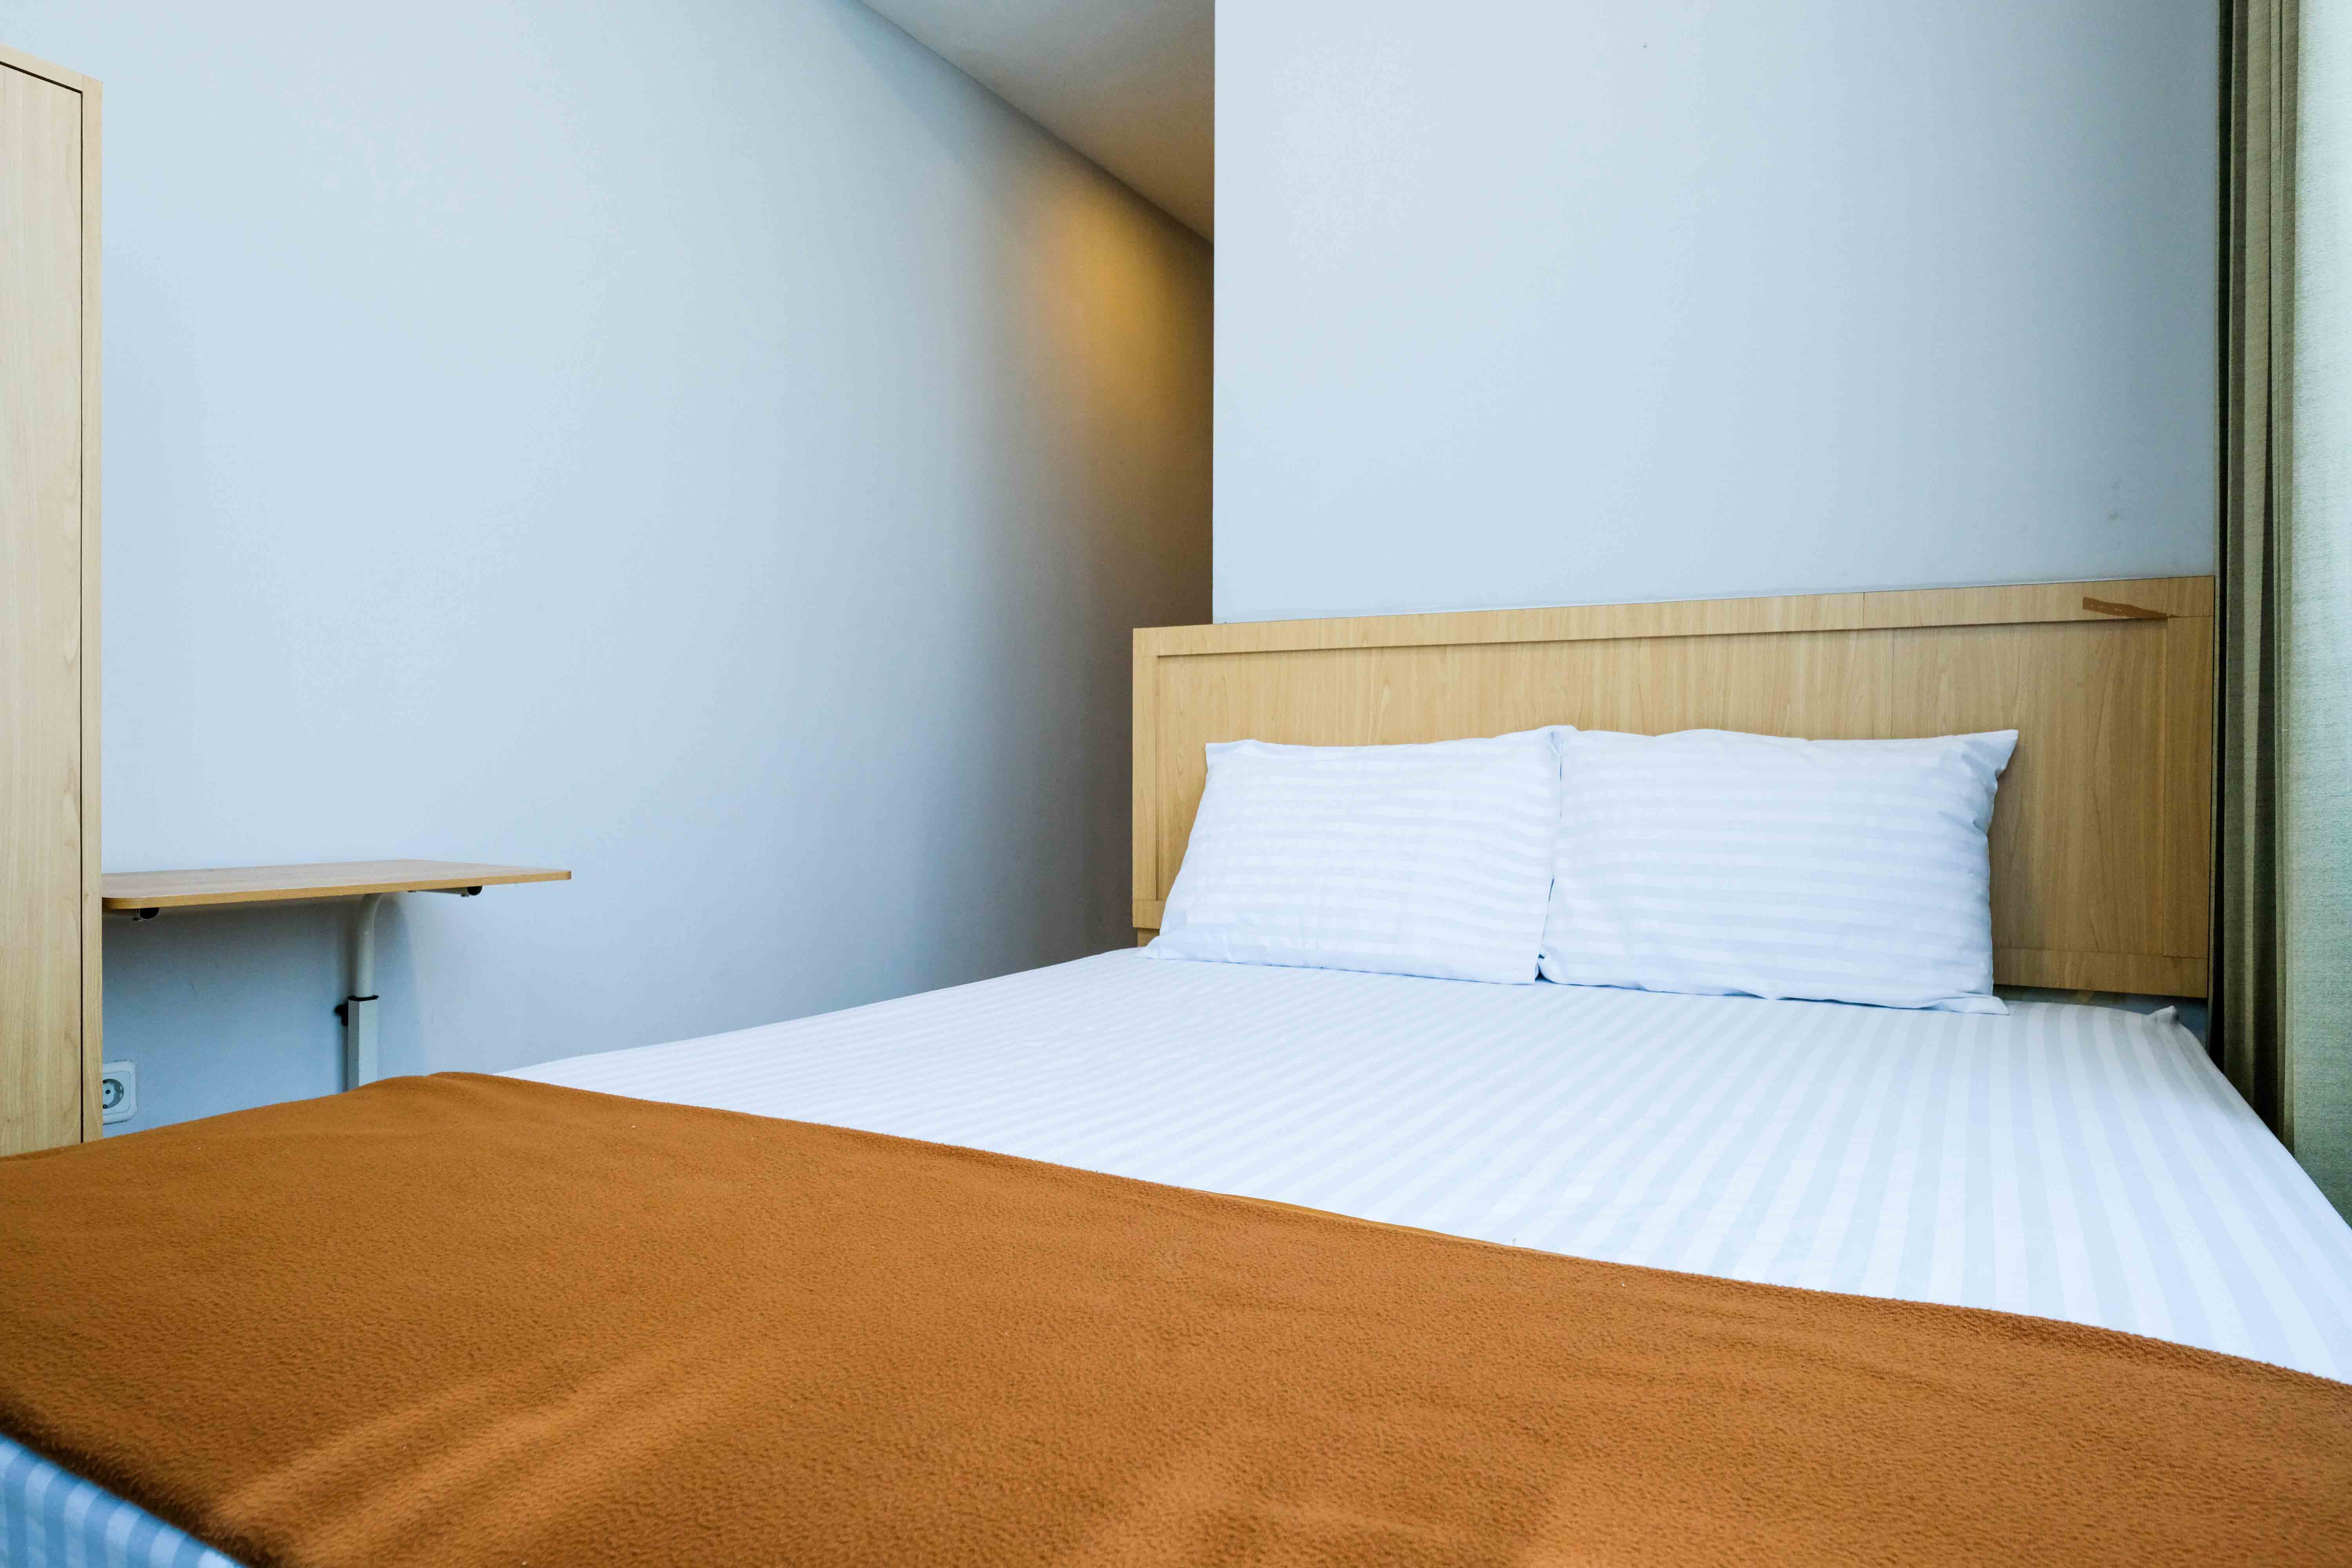 Kost Spacious Spacious Queen Bed A  Bedroom Kost Benda Homestay 8 CBC